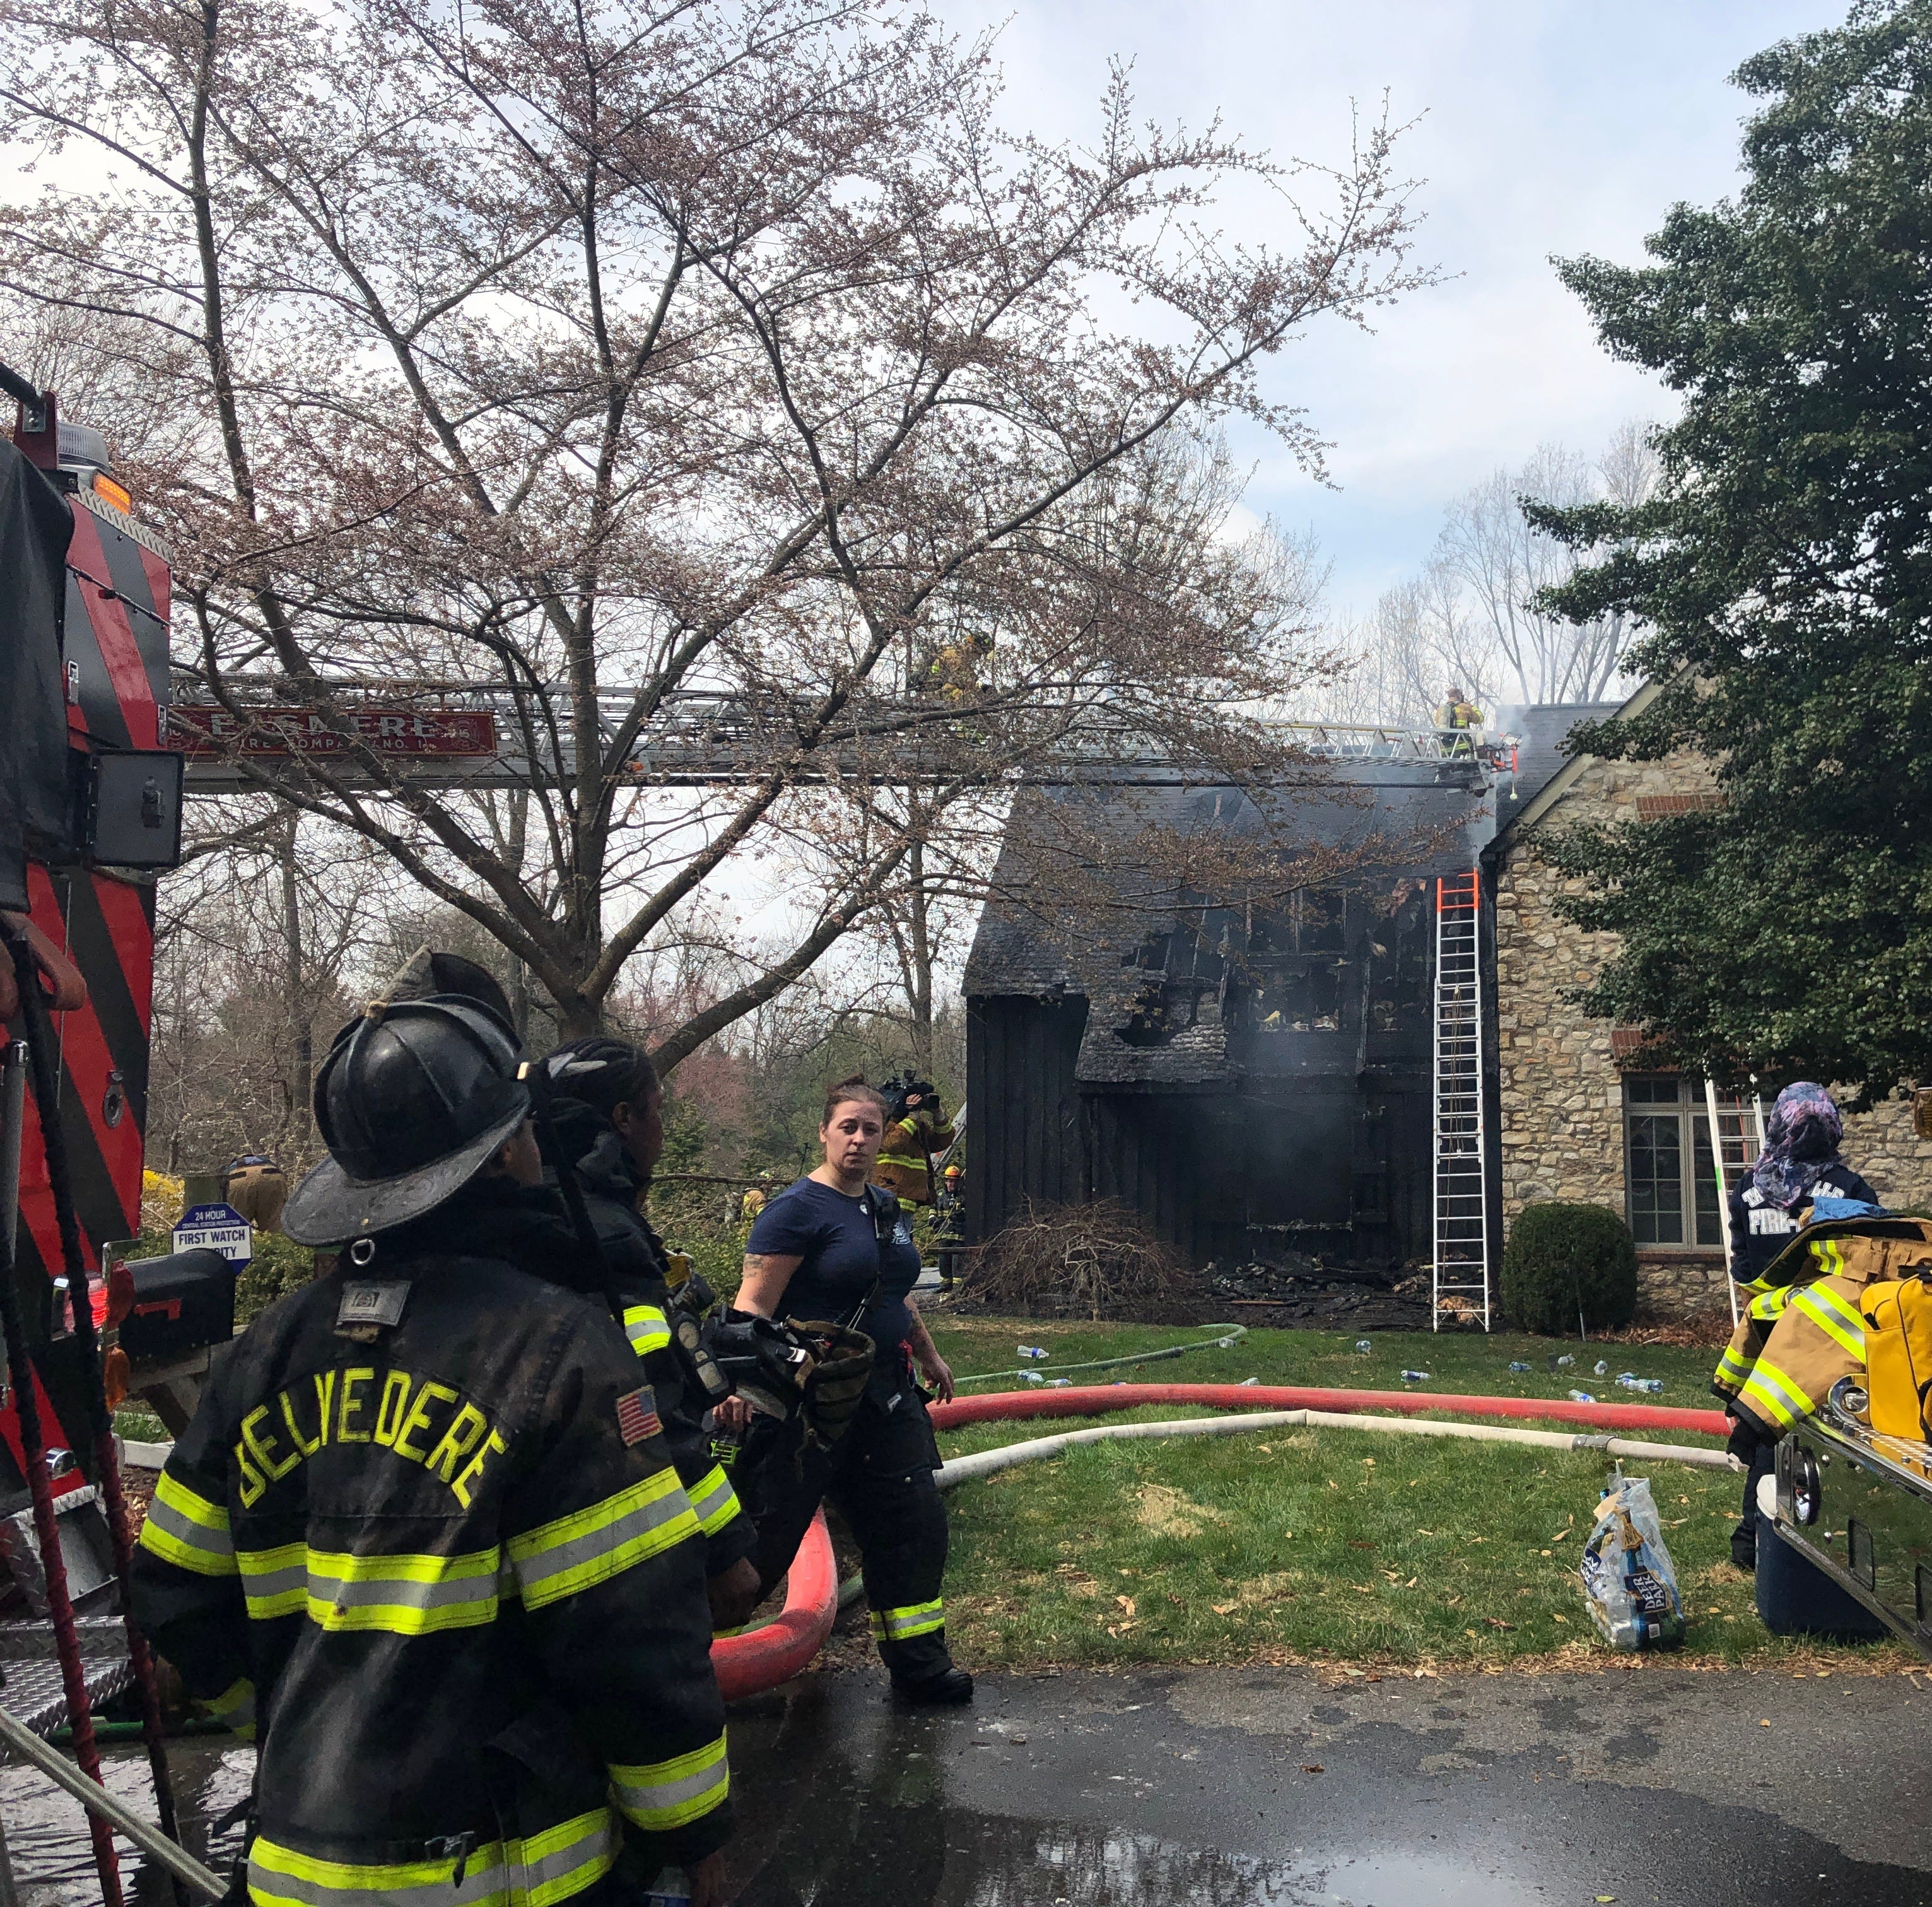 Firefighters at scene of house fire on Chandler Avenue in Centreville